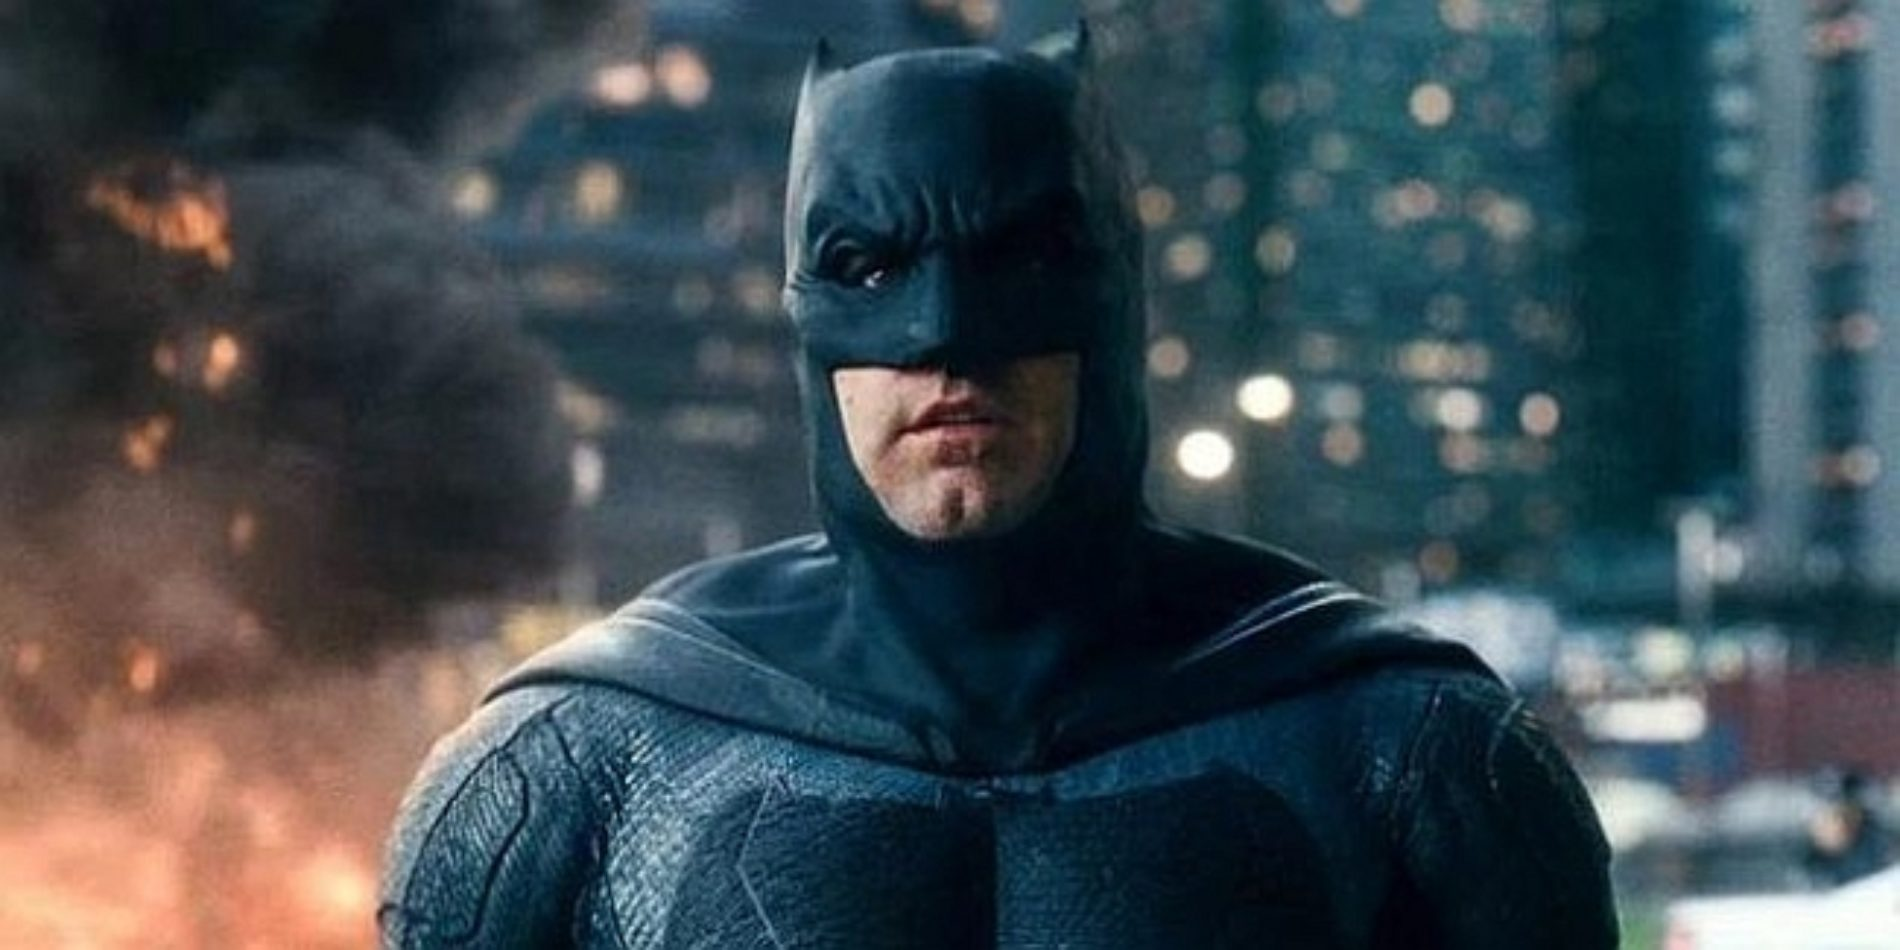 Ben Affleck no estará en The Batman la película situada como un reinicio